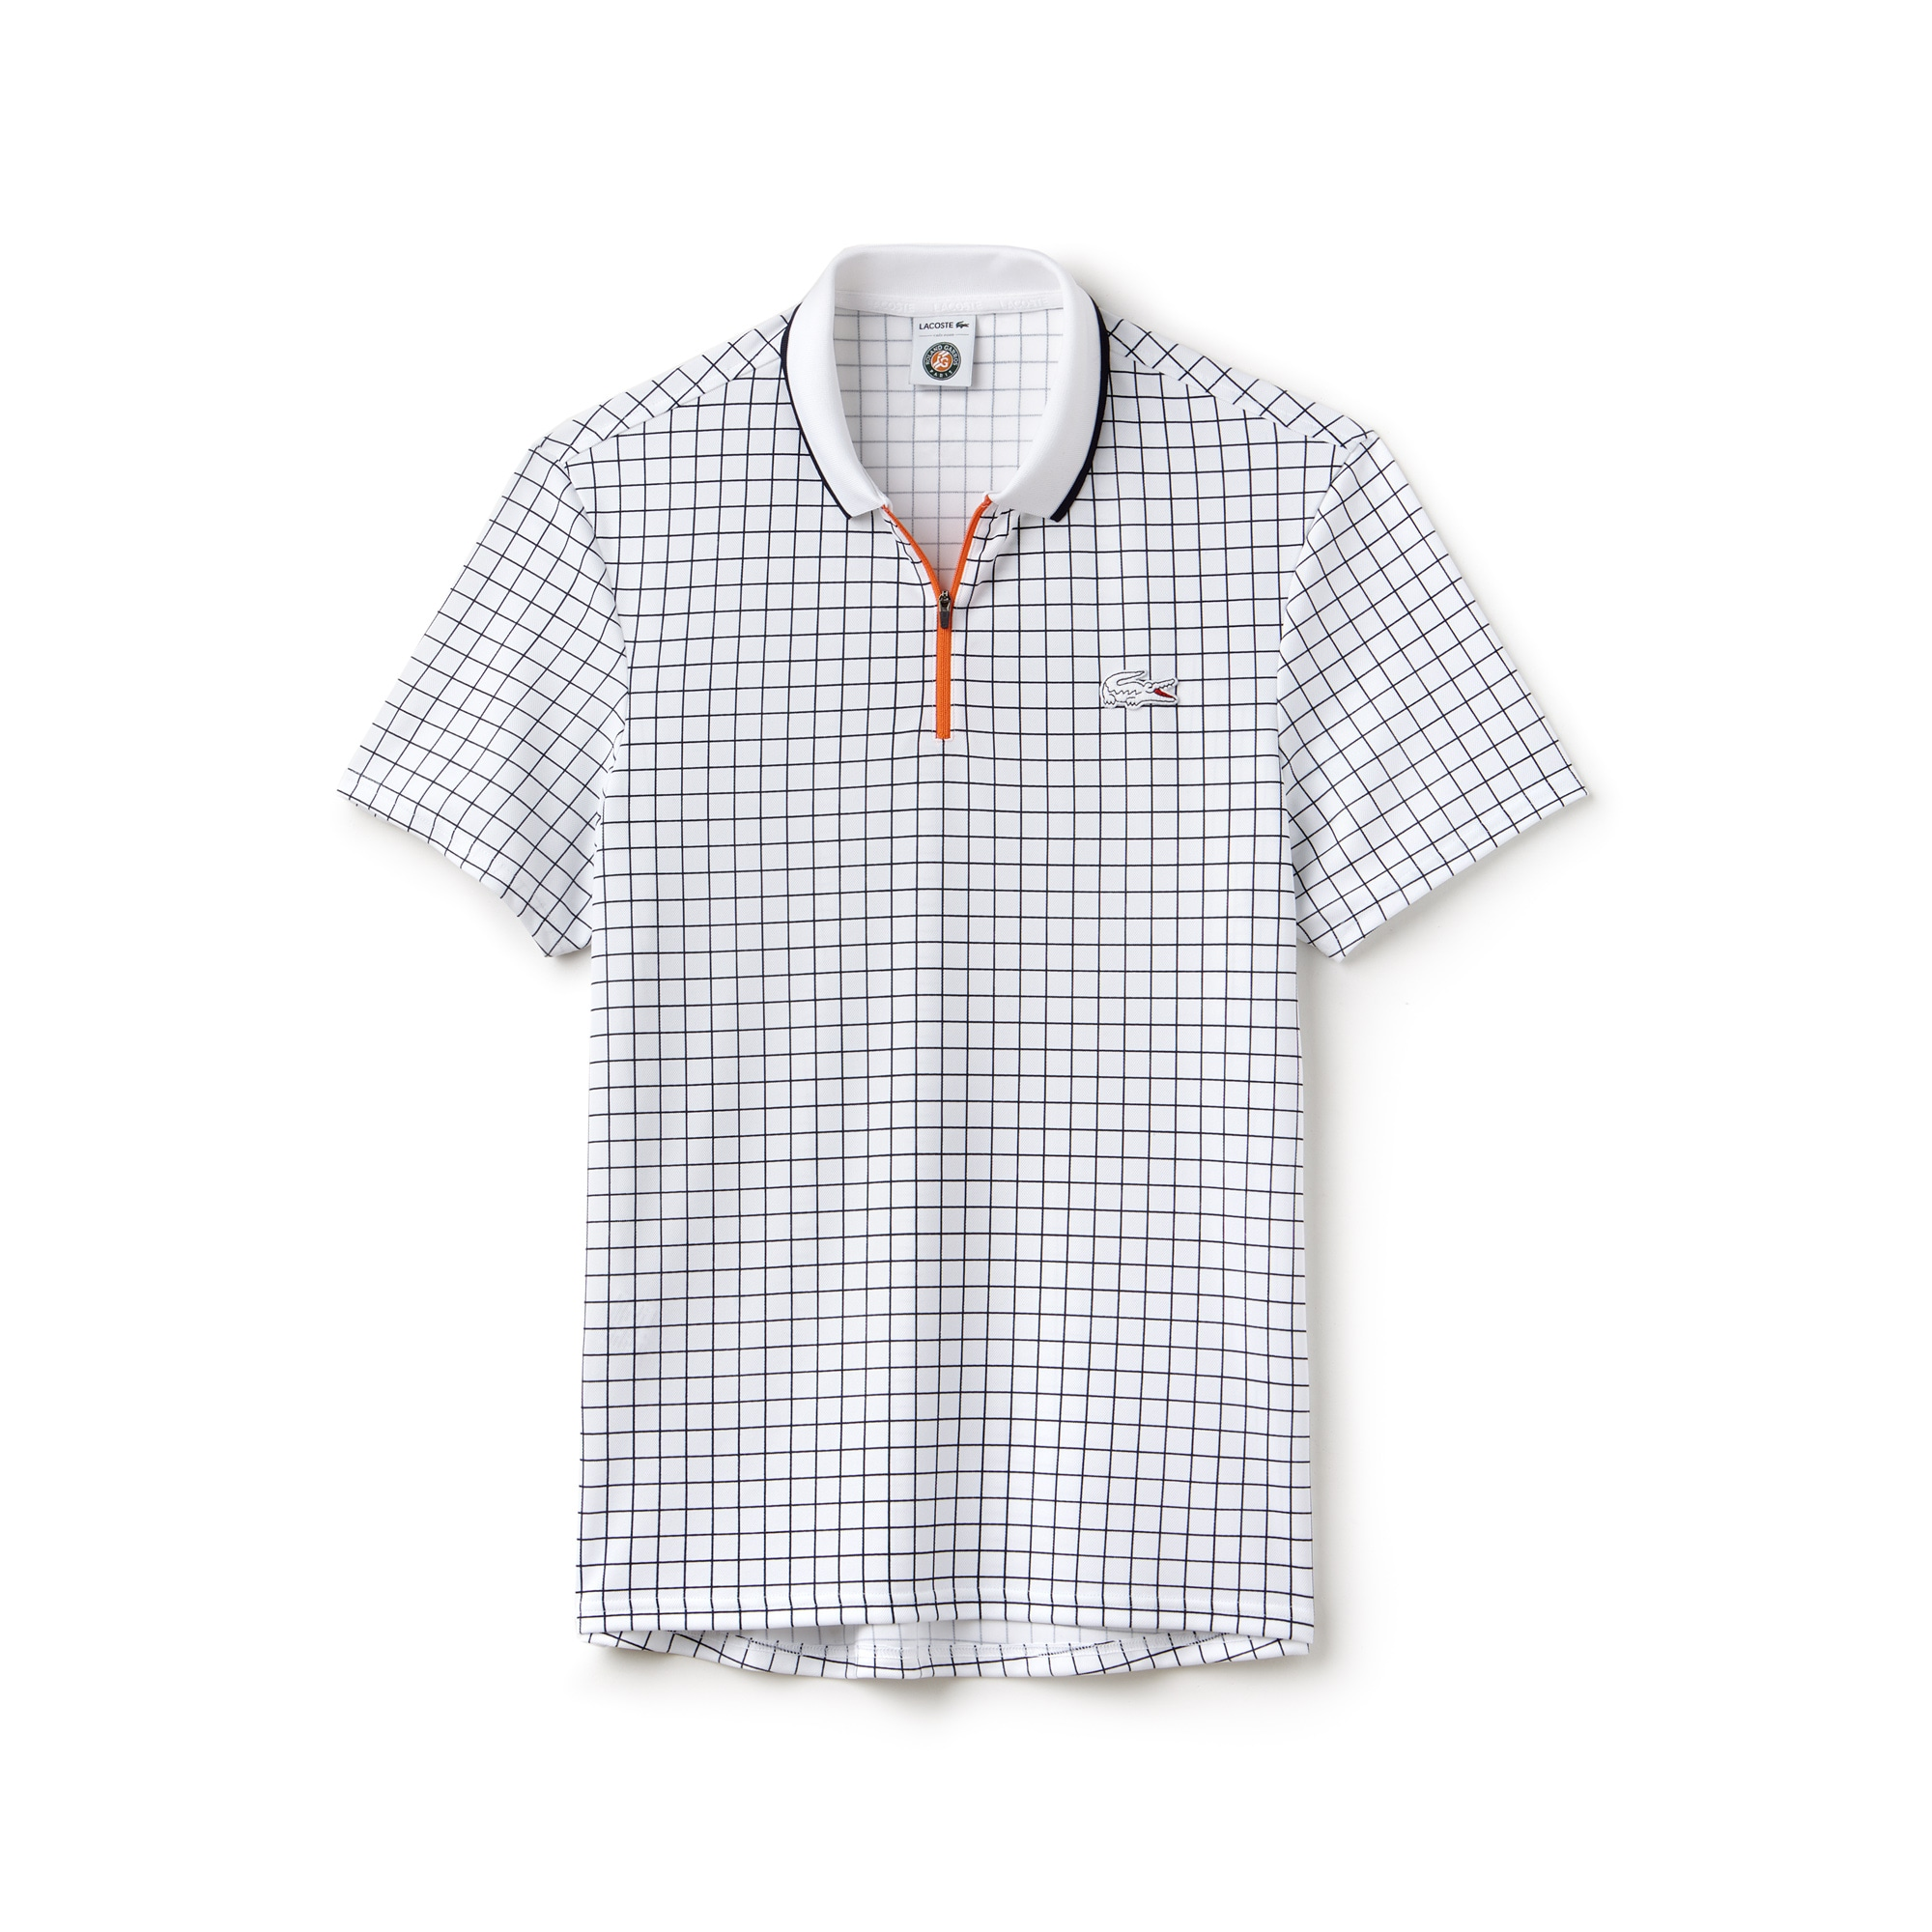 Lacoste Lacoste Collection Roland Lacoste GarrosHomme GarrosHomme Roland Roland Collection GarrosHomme Collection pqSUzVMG